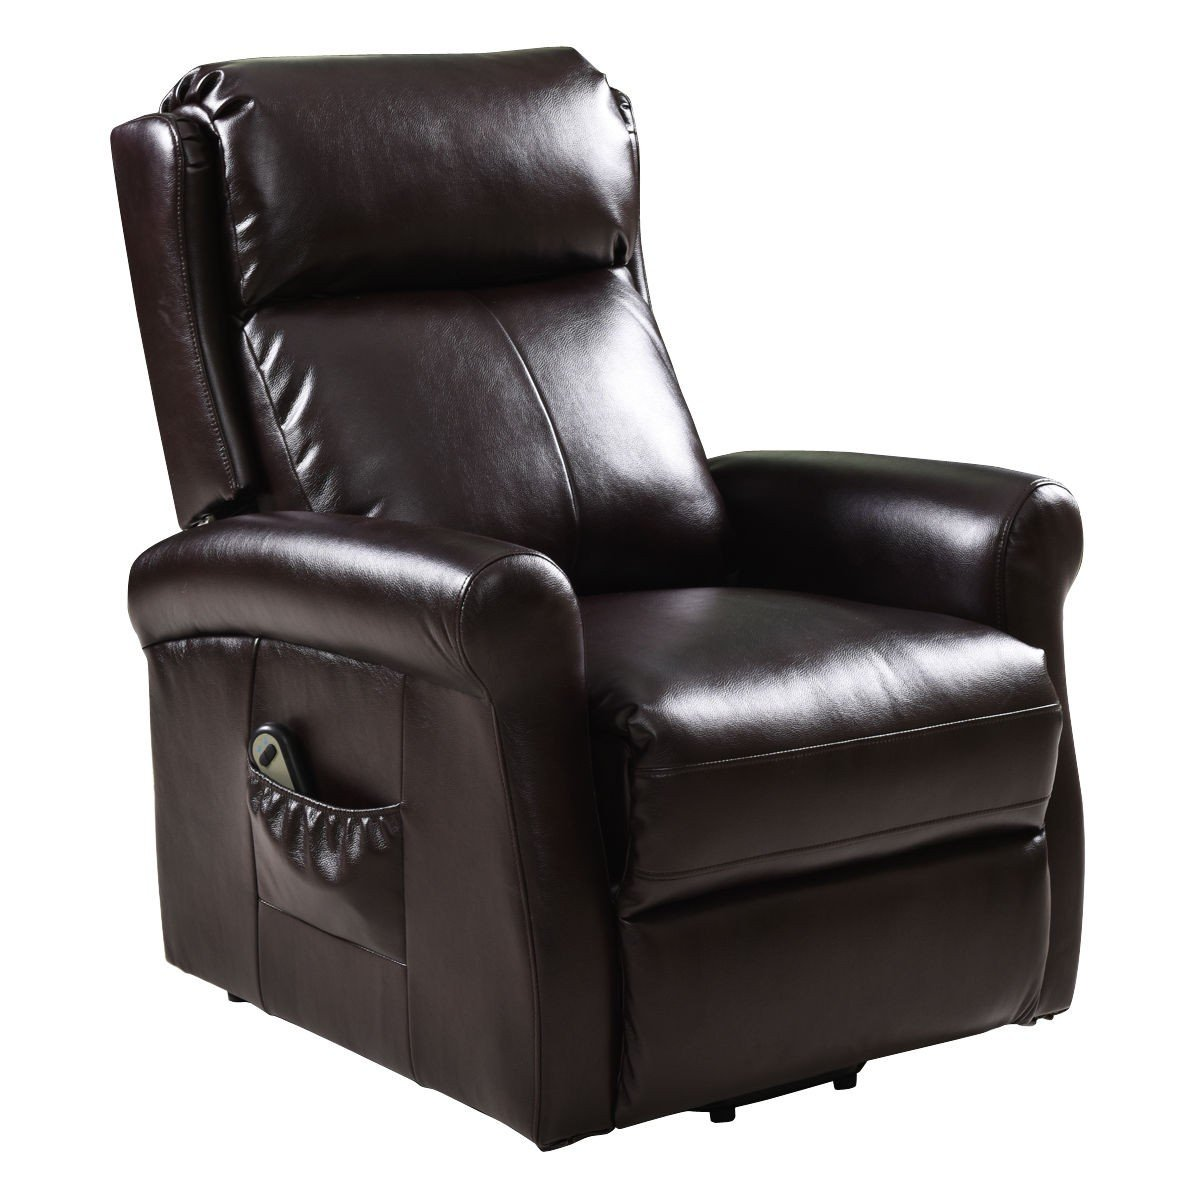 Brown Electric Lift Chair Recliner Lift chair recliners